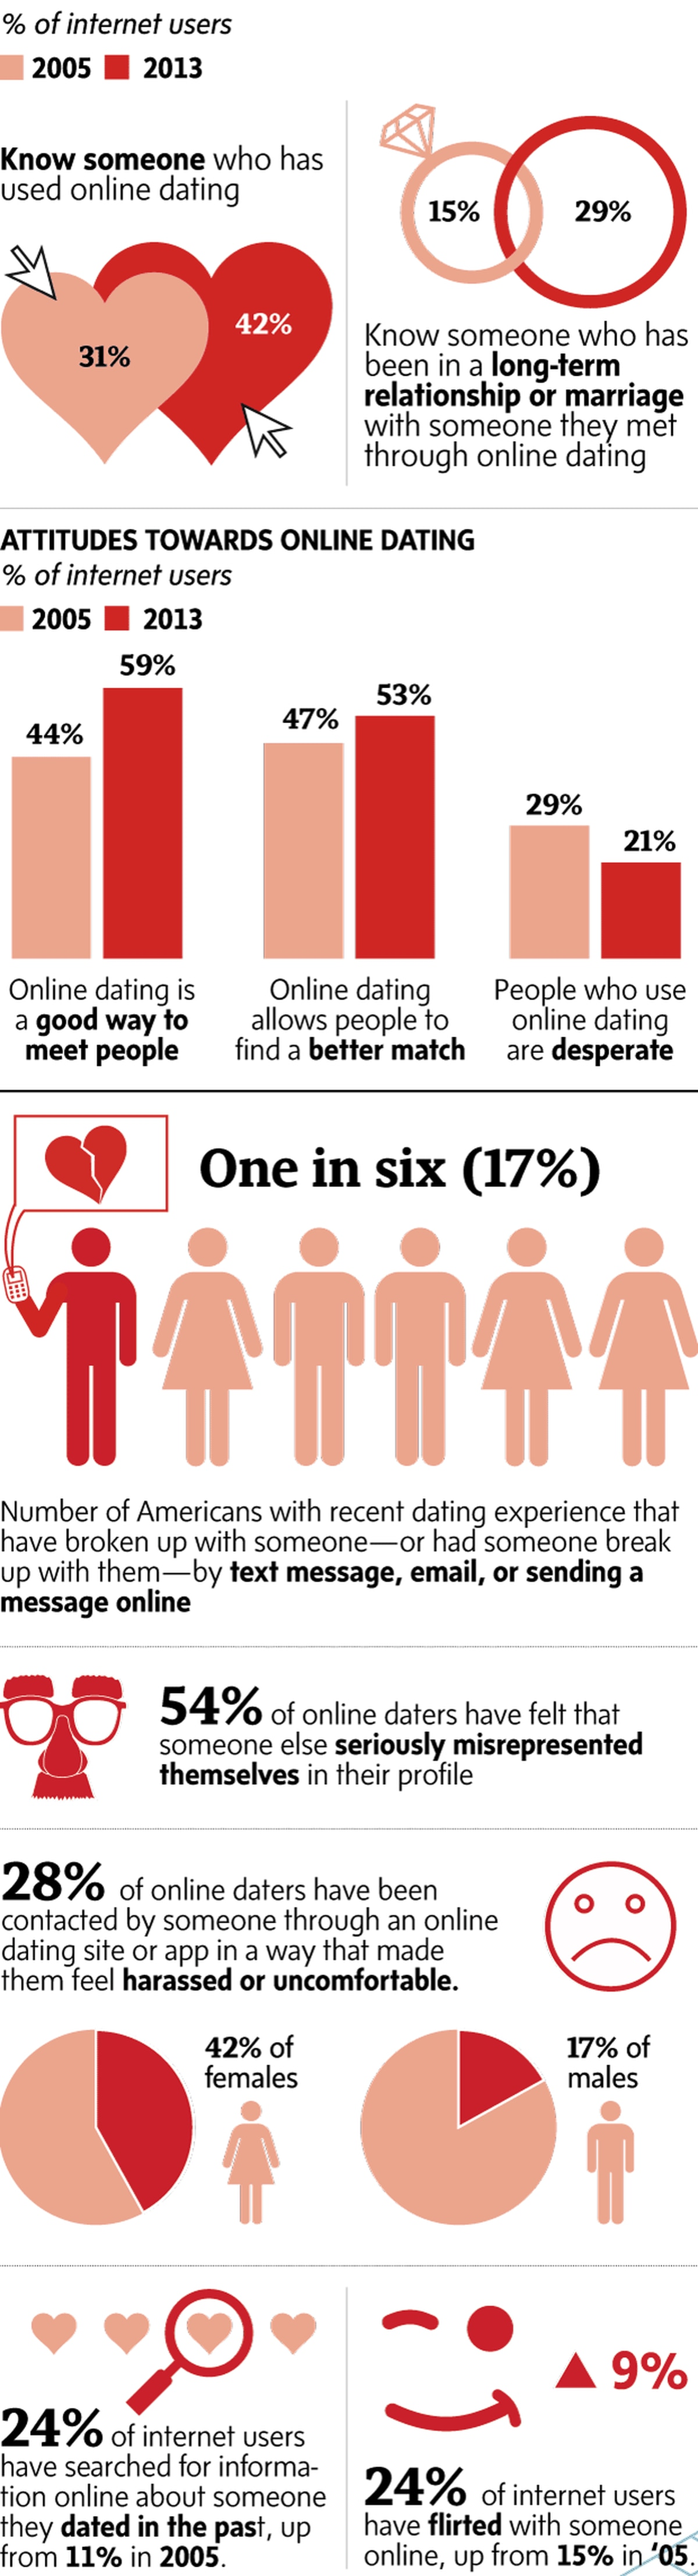 Online Dating Statistics and Fun Facts